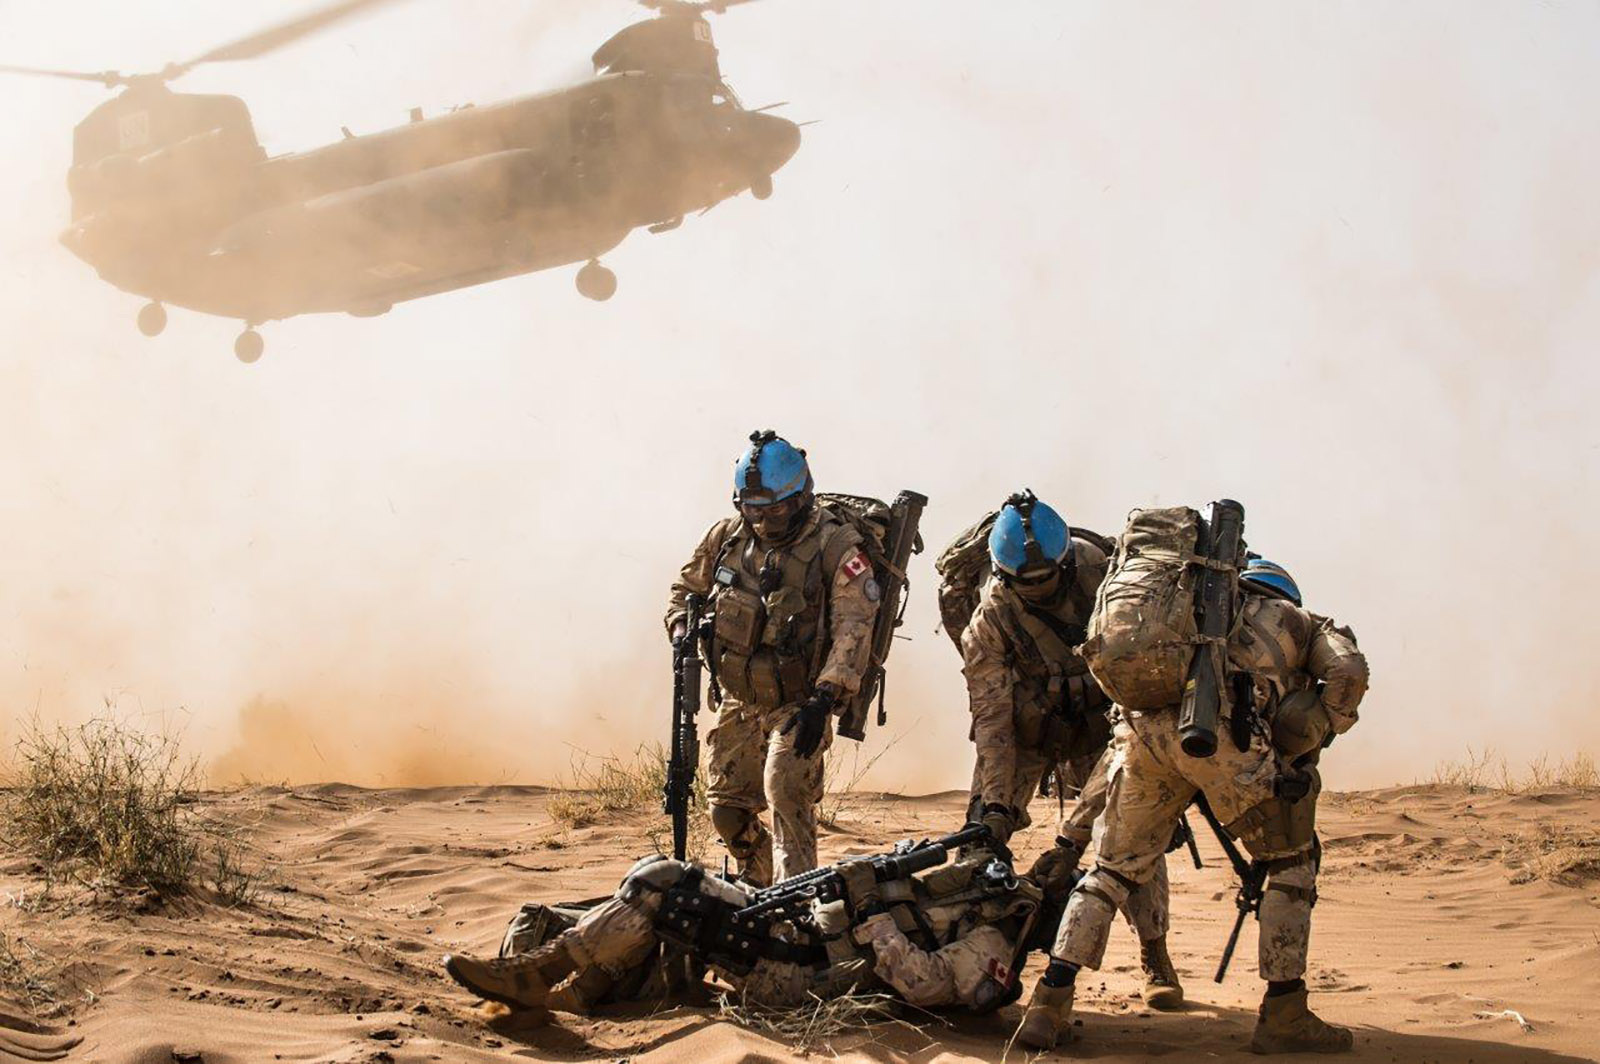 Operation PRESENCE-Mali's Force Protection team assists a simulated casualty during a combat casualty exercise in Mali on December 17, 2018.